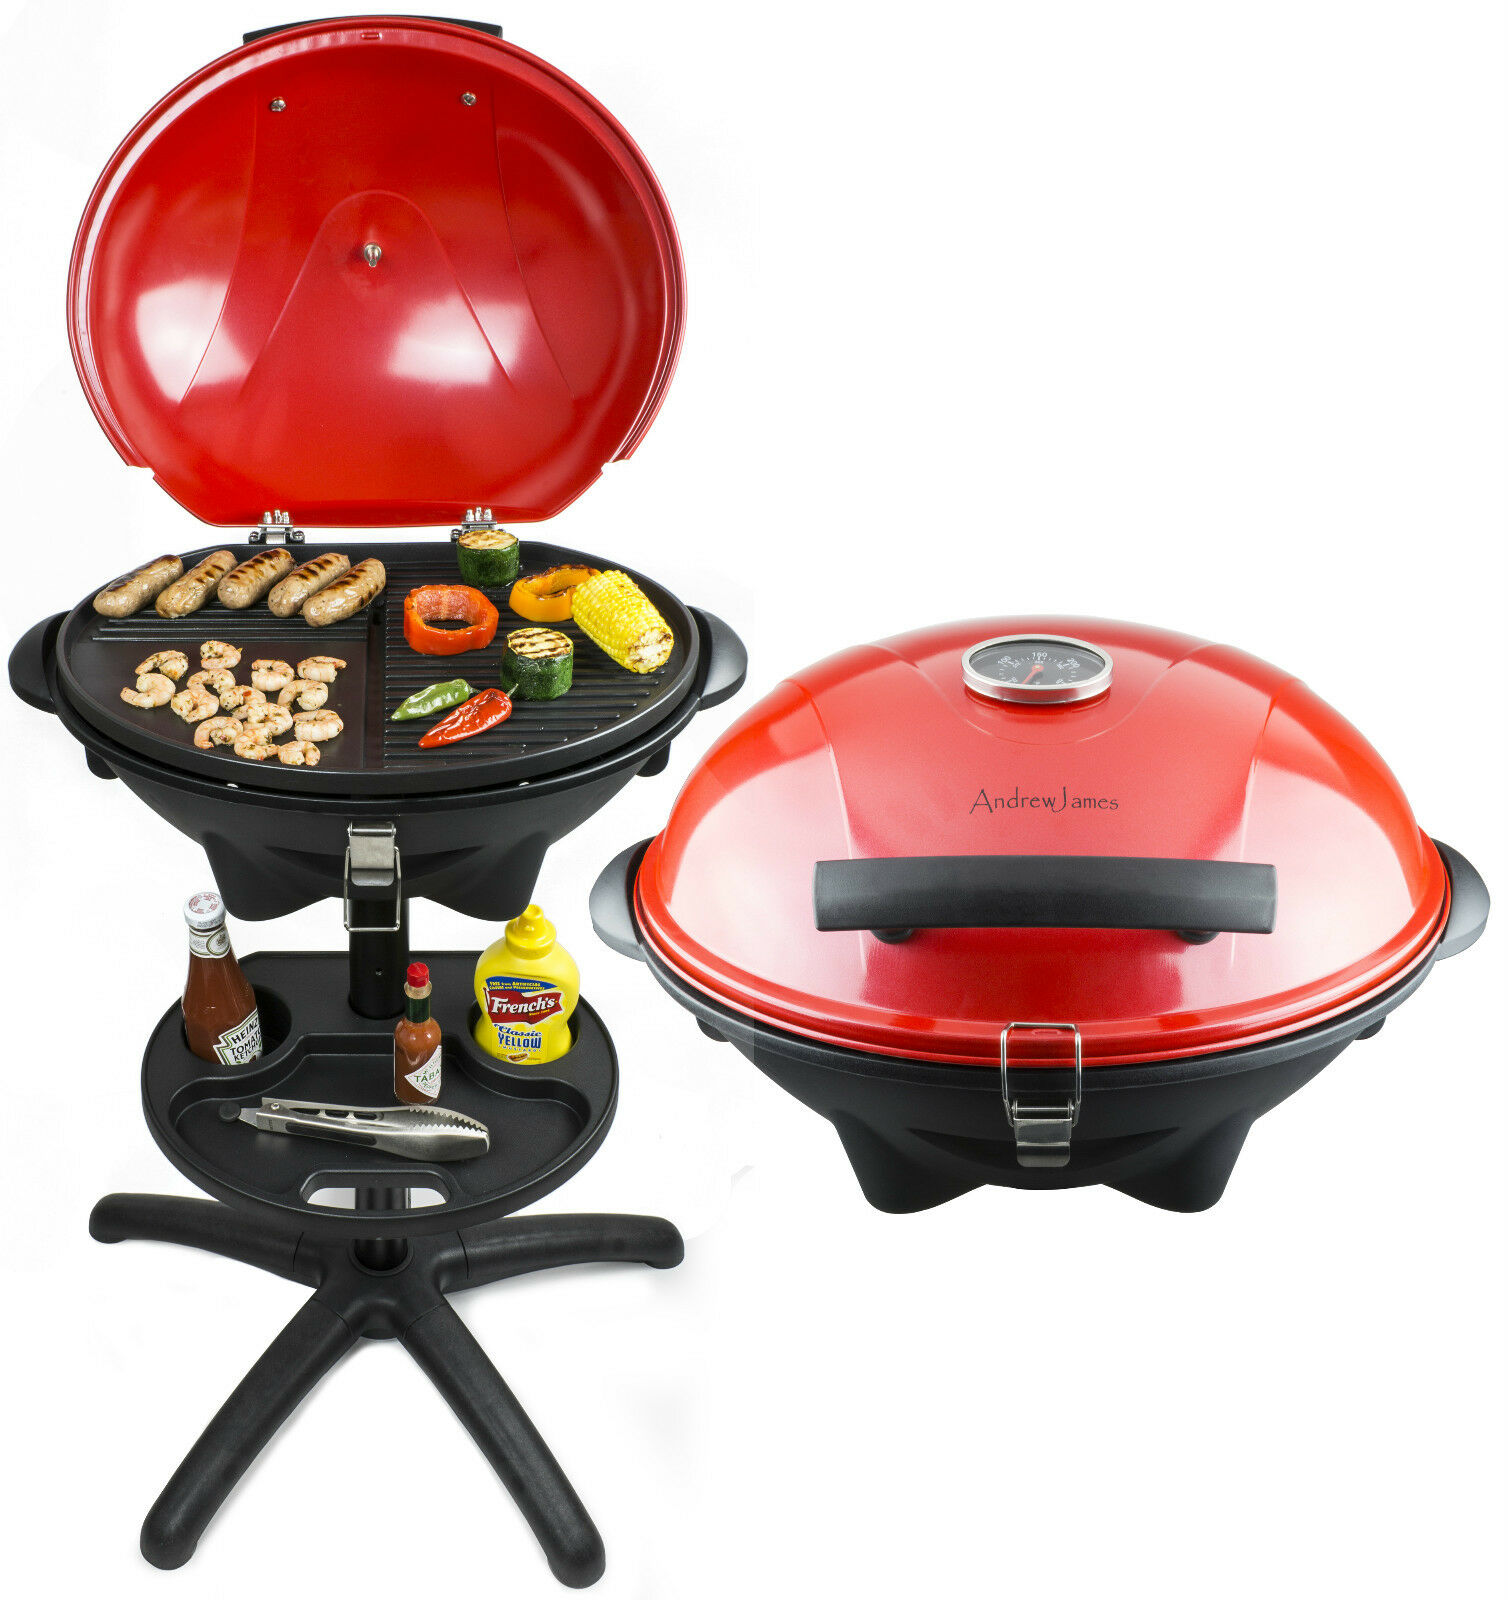 Small Electric Griller ~ Andrew james portable red electric bbq grill griddle